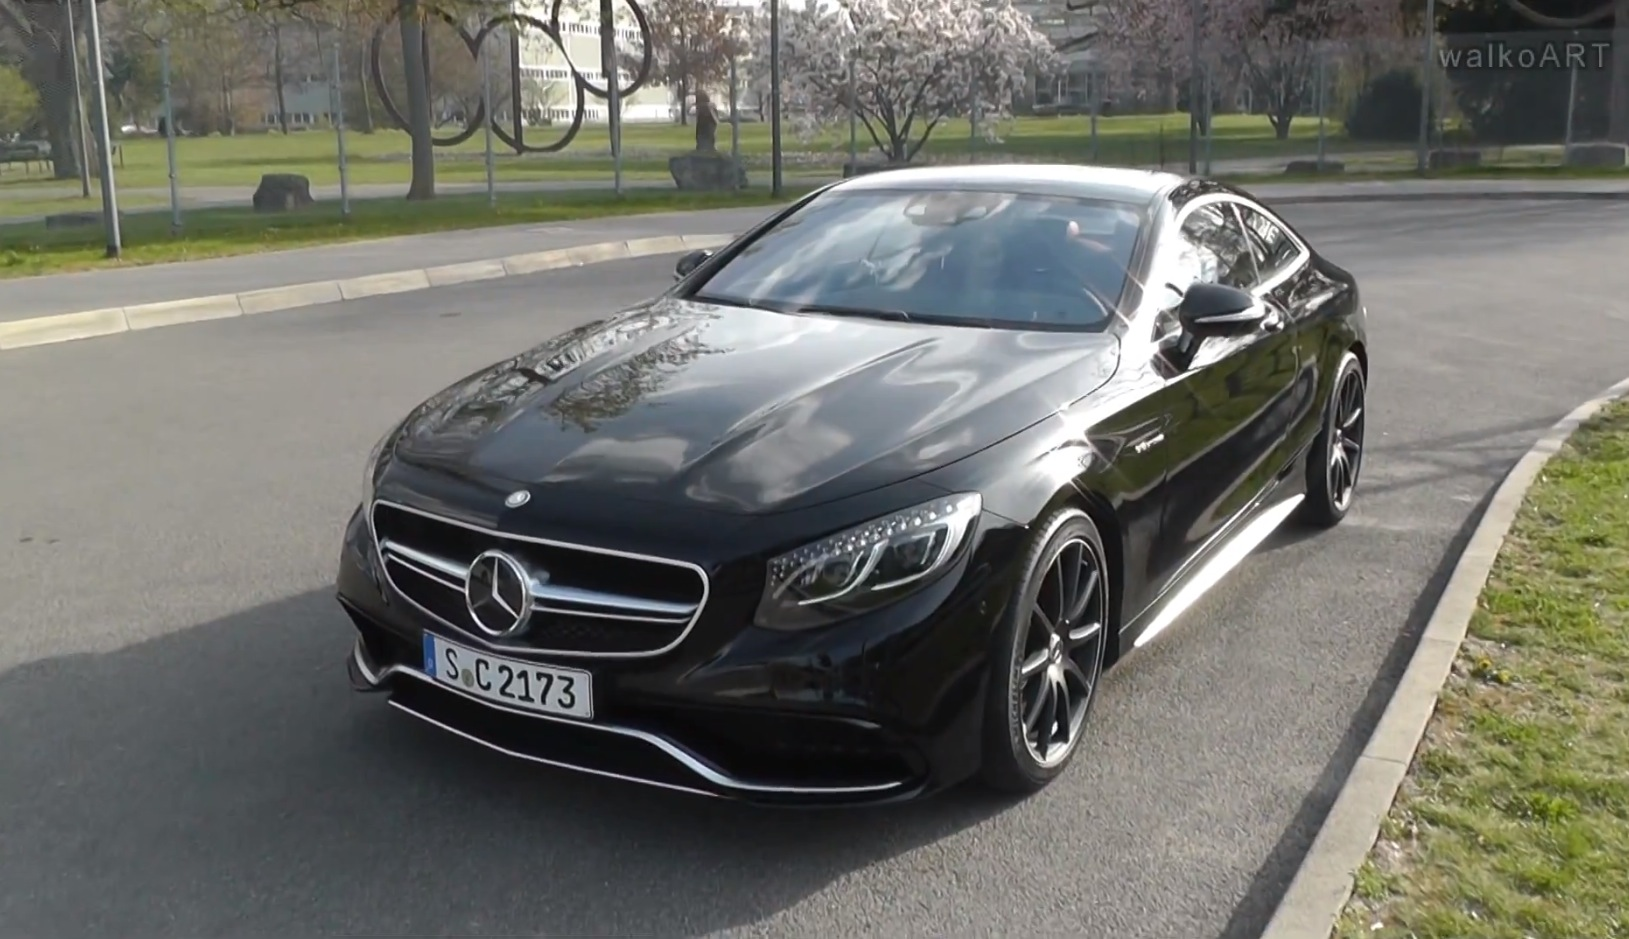 black s 63 amg coupe c217 spotted on the street video autoevolution. Black Bedroom Furniture Sets. Home Design Ideas